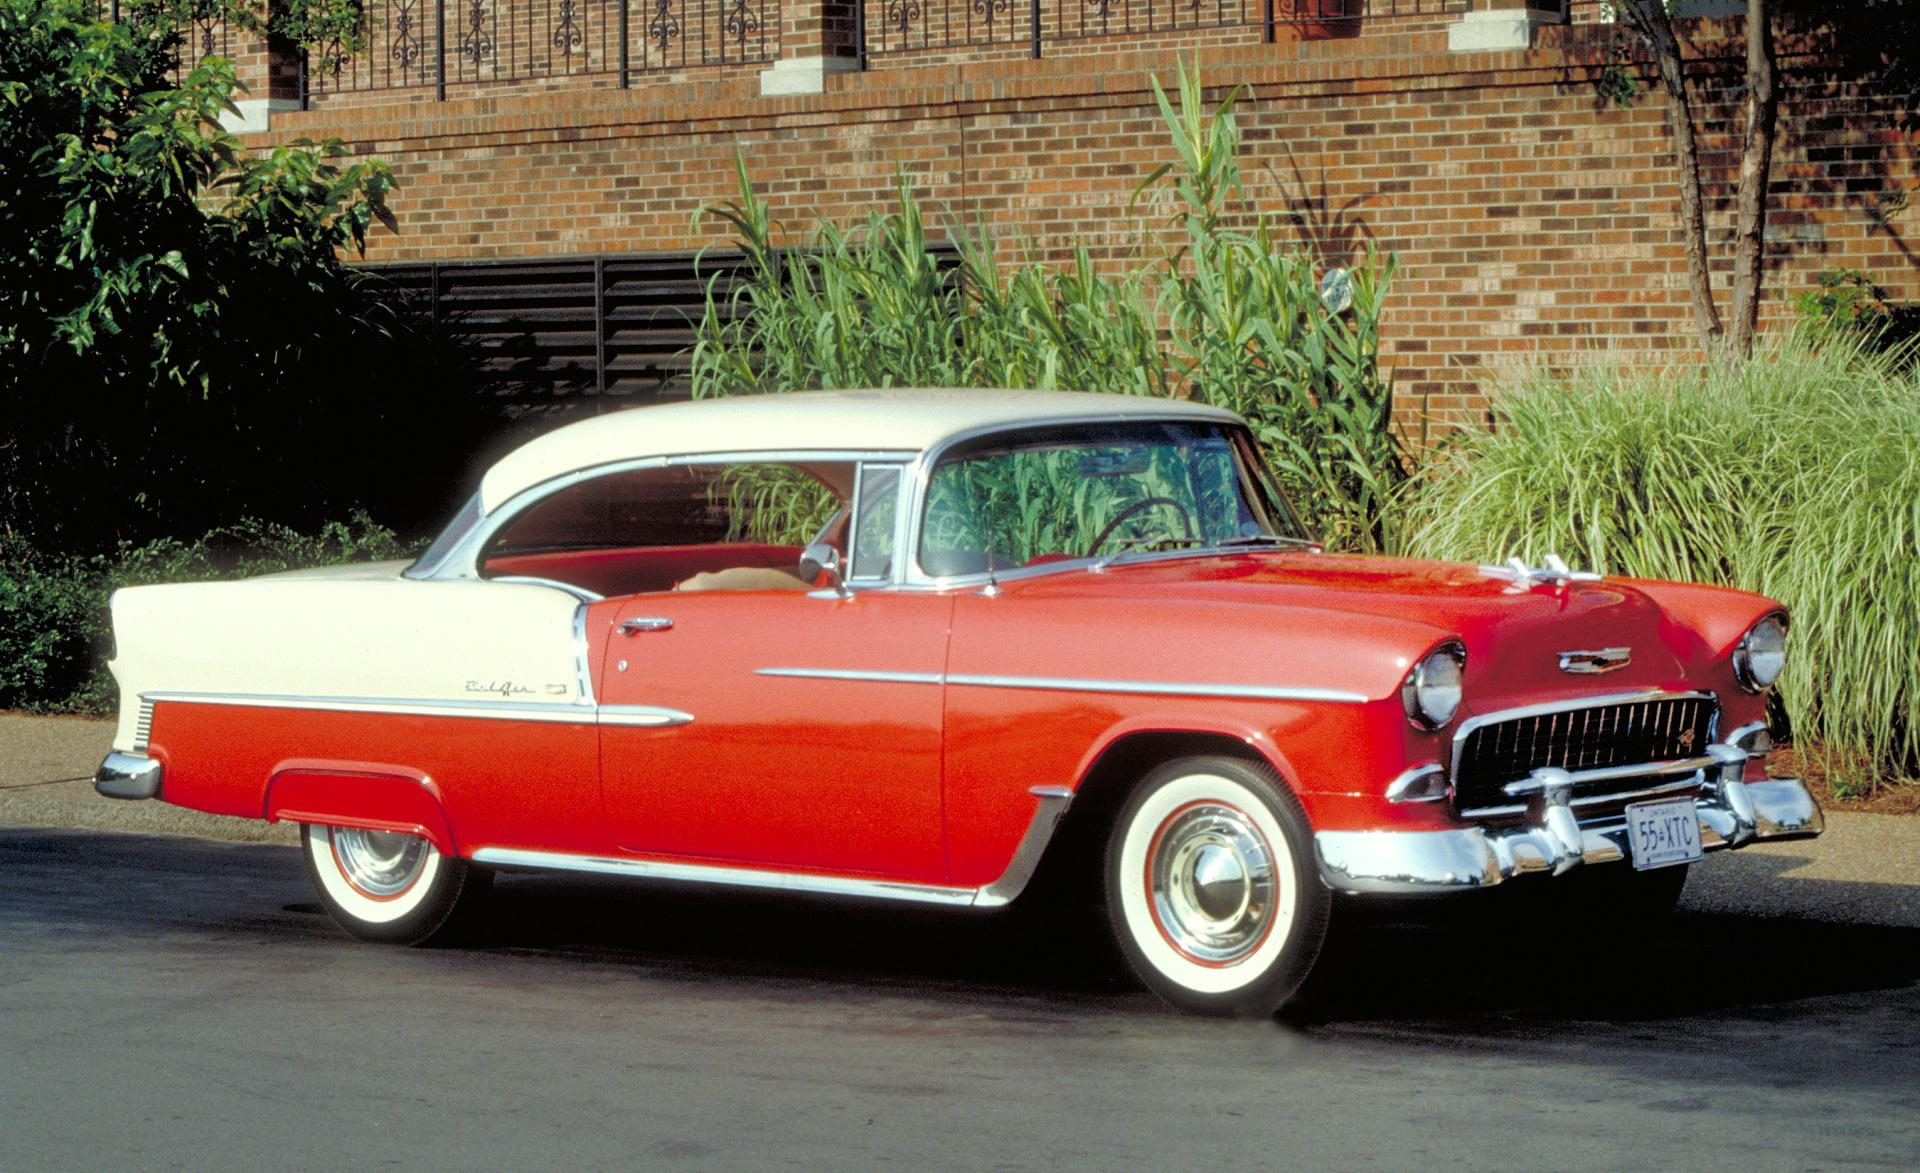 1955 Chevrolet Bel Air #1